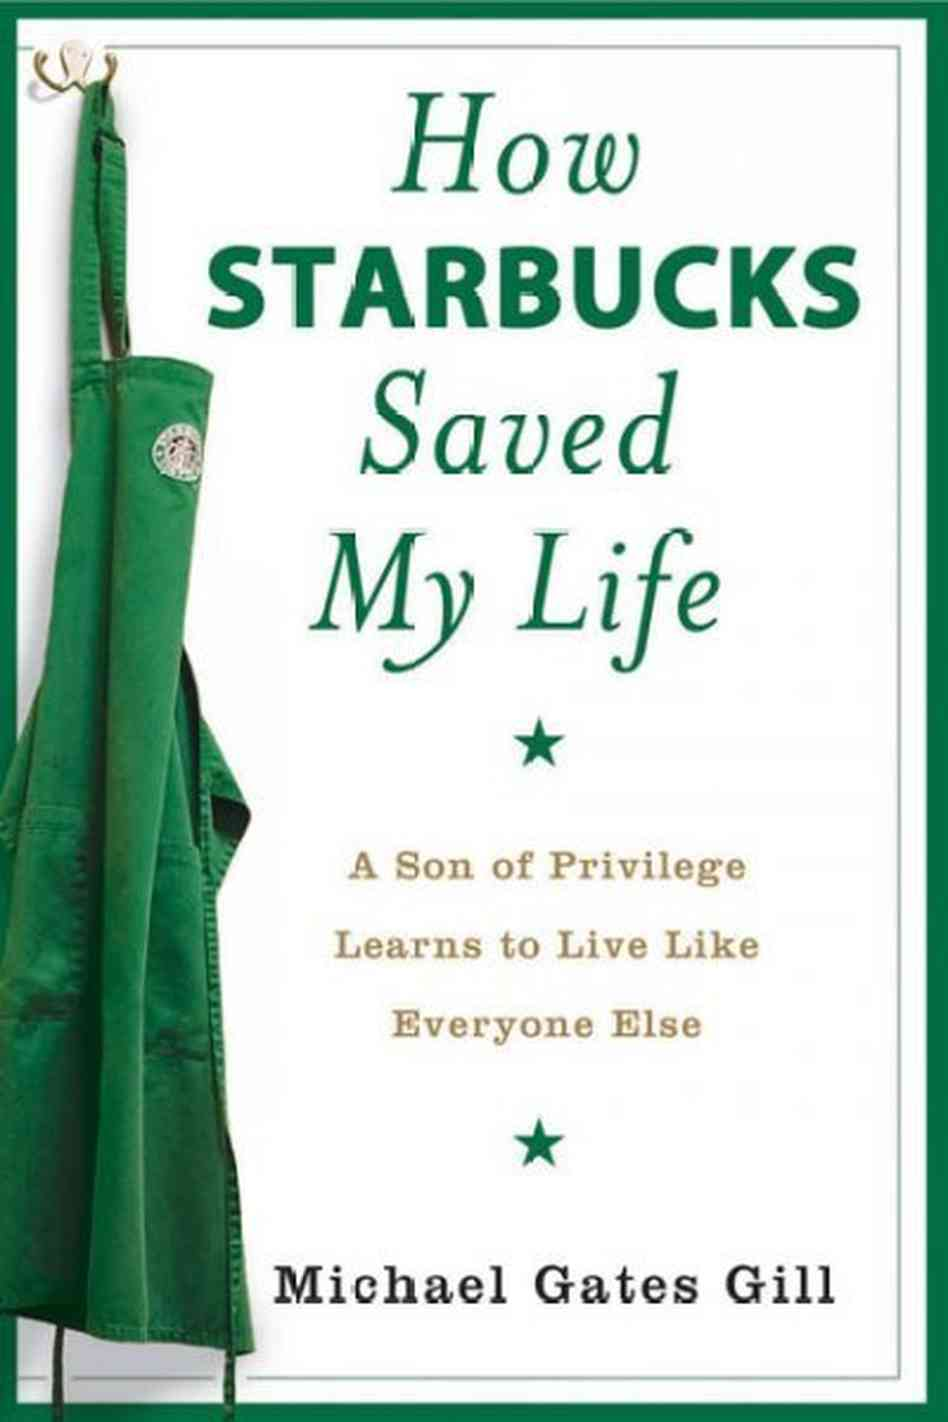 Michael Gates Gill – How Starbucks Saved My Life